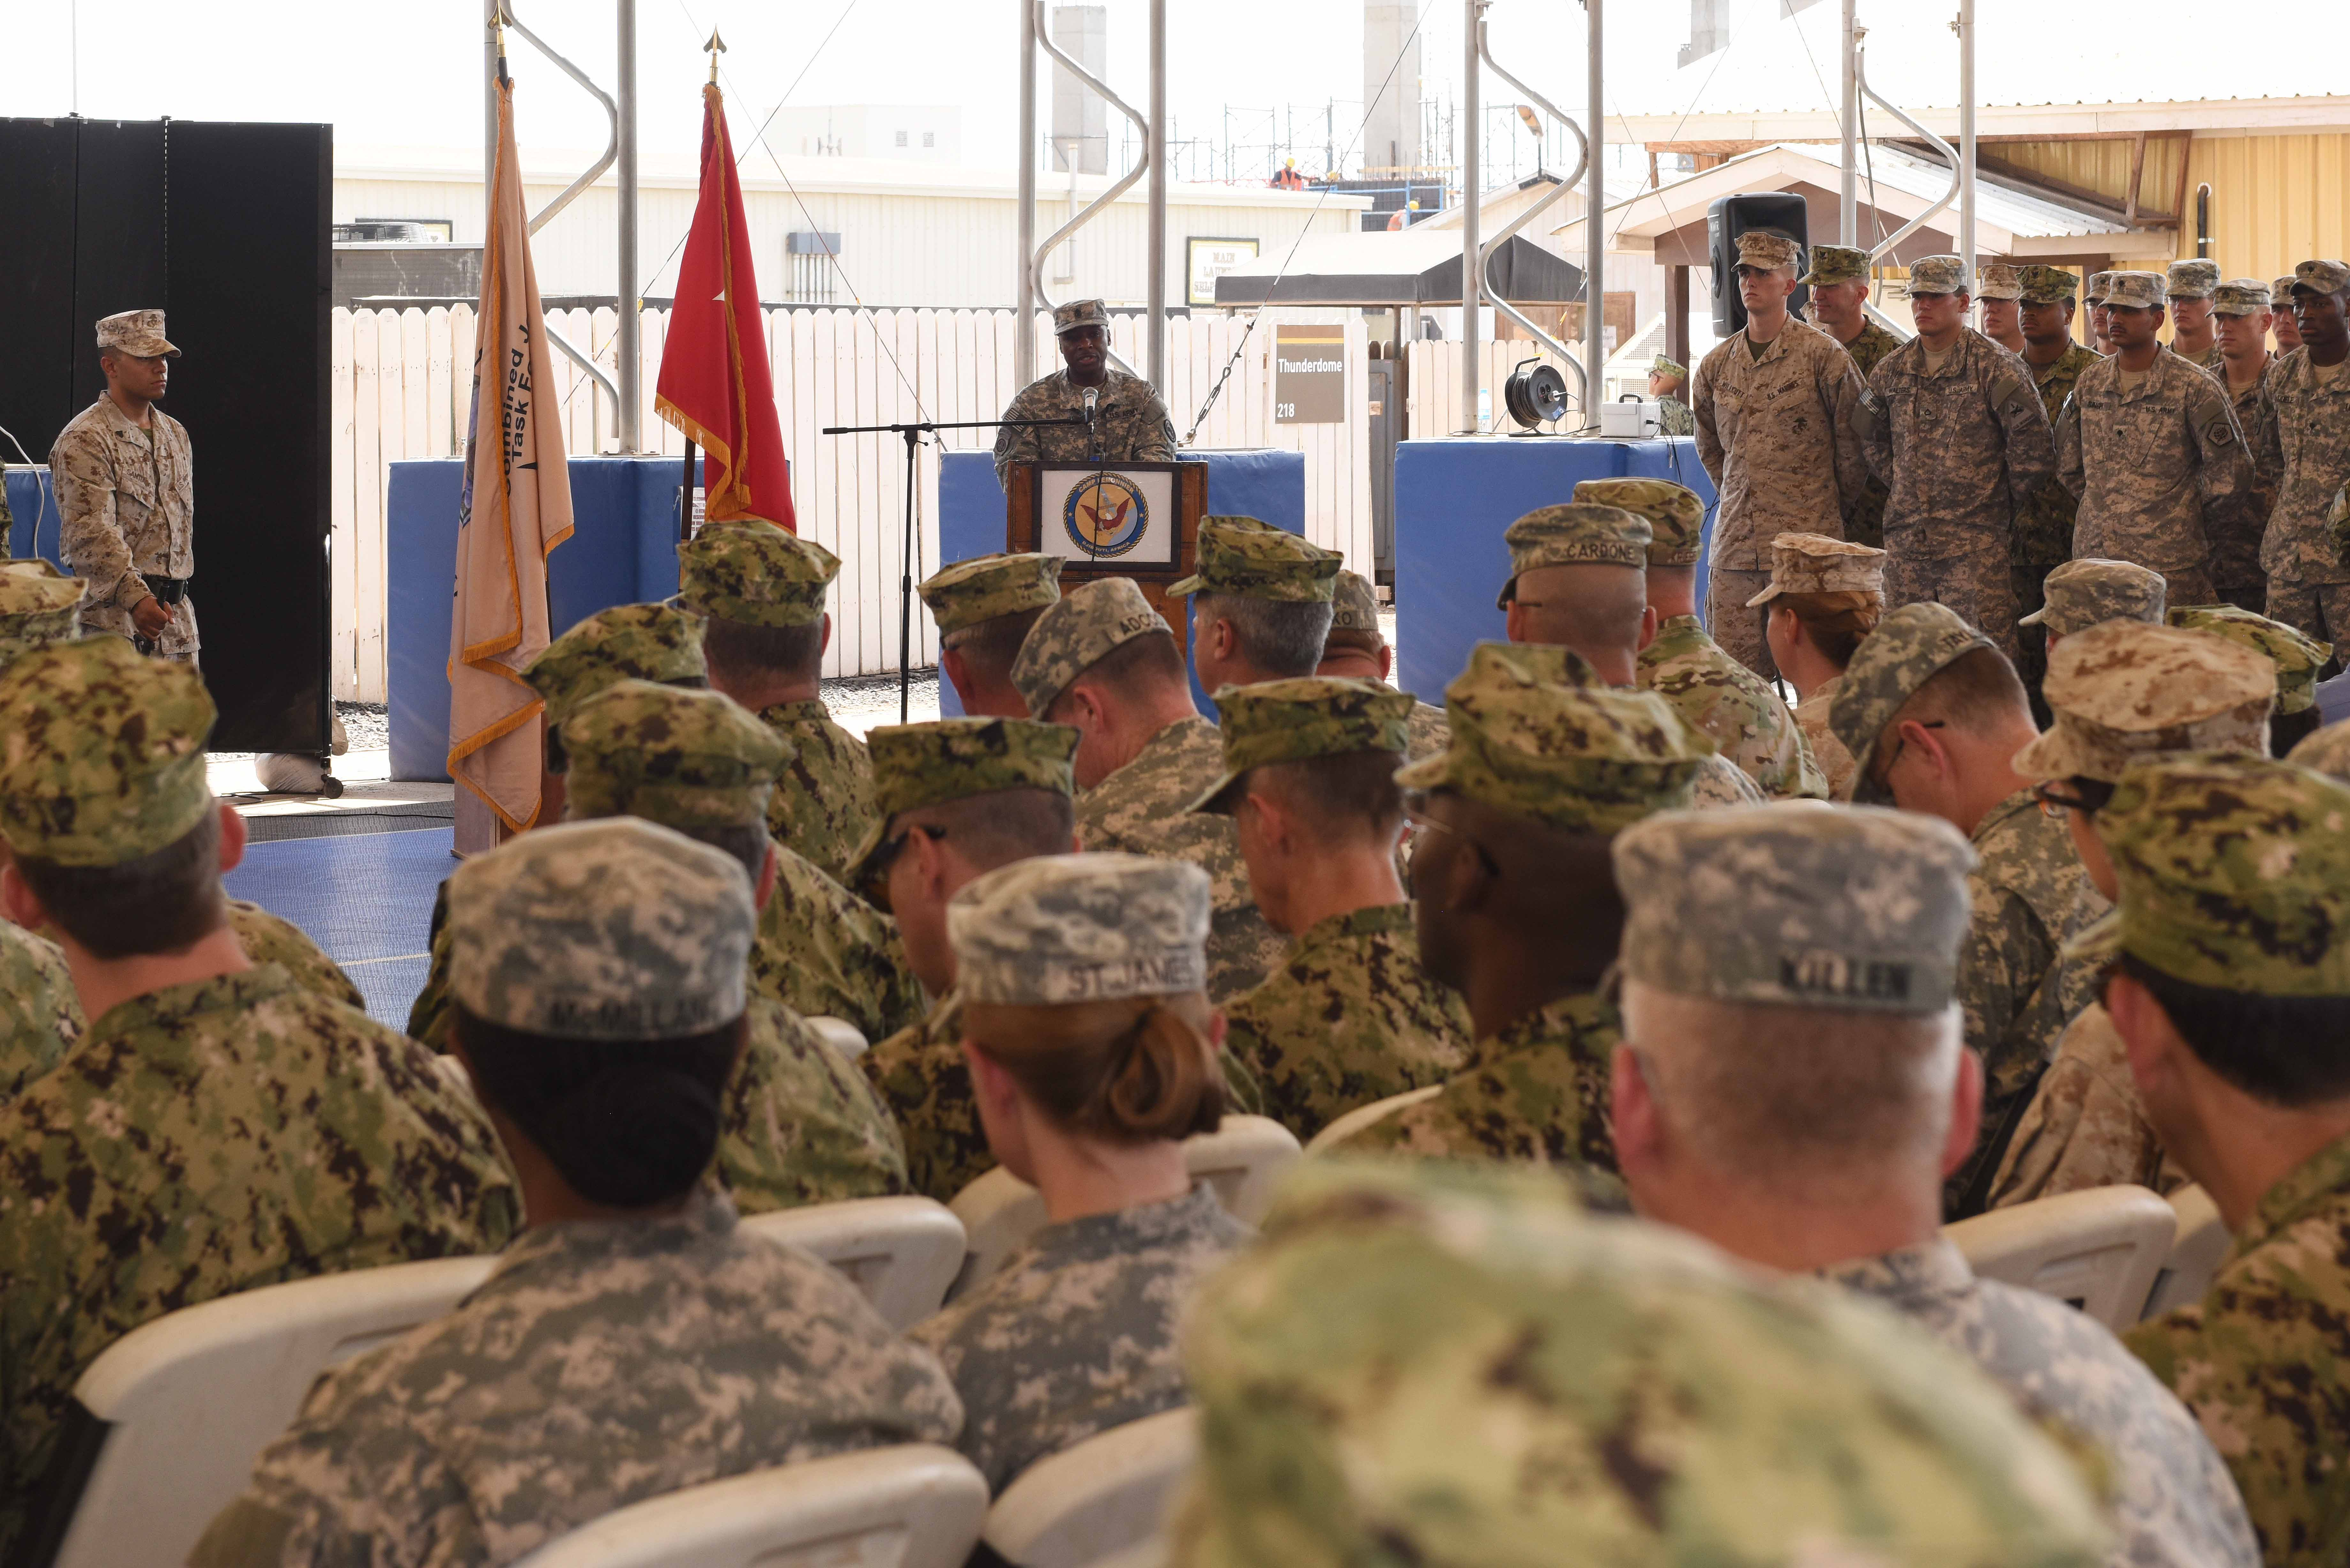 U.S. Army Sgt. Maj. Claudell Taylor speaks with service members assigned to Camp Lemonnier, Djibouti during a relinquishment of authority ceremony when he took over on May 16, 2015.  During his six weeks as interim command senior enlisted leader, ending June 19, 2015, he served as the principle advisor to the Combined Joint Task Force-Horn of Africa commander, and was responsible for issues affecting health, morale, welfare and professional development for more than 1,800 Army, Navy, Air Force and Marines joint service personnel in 14 African countries.  (U.S. Air Force photo by Staff Sgt. Maria Bowman)